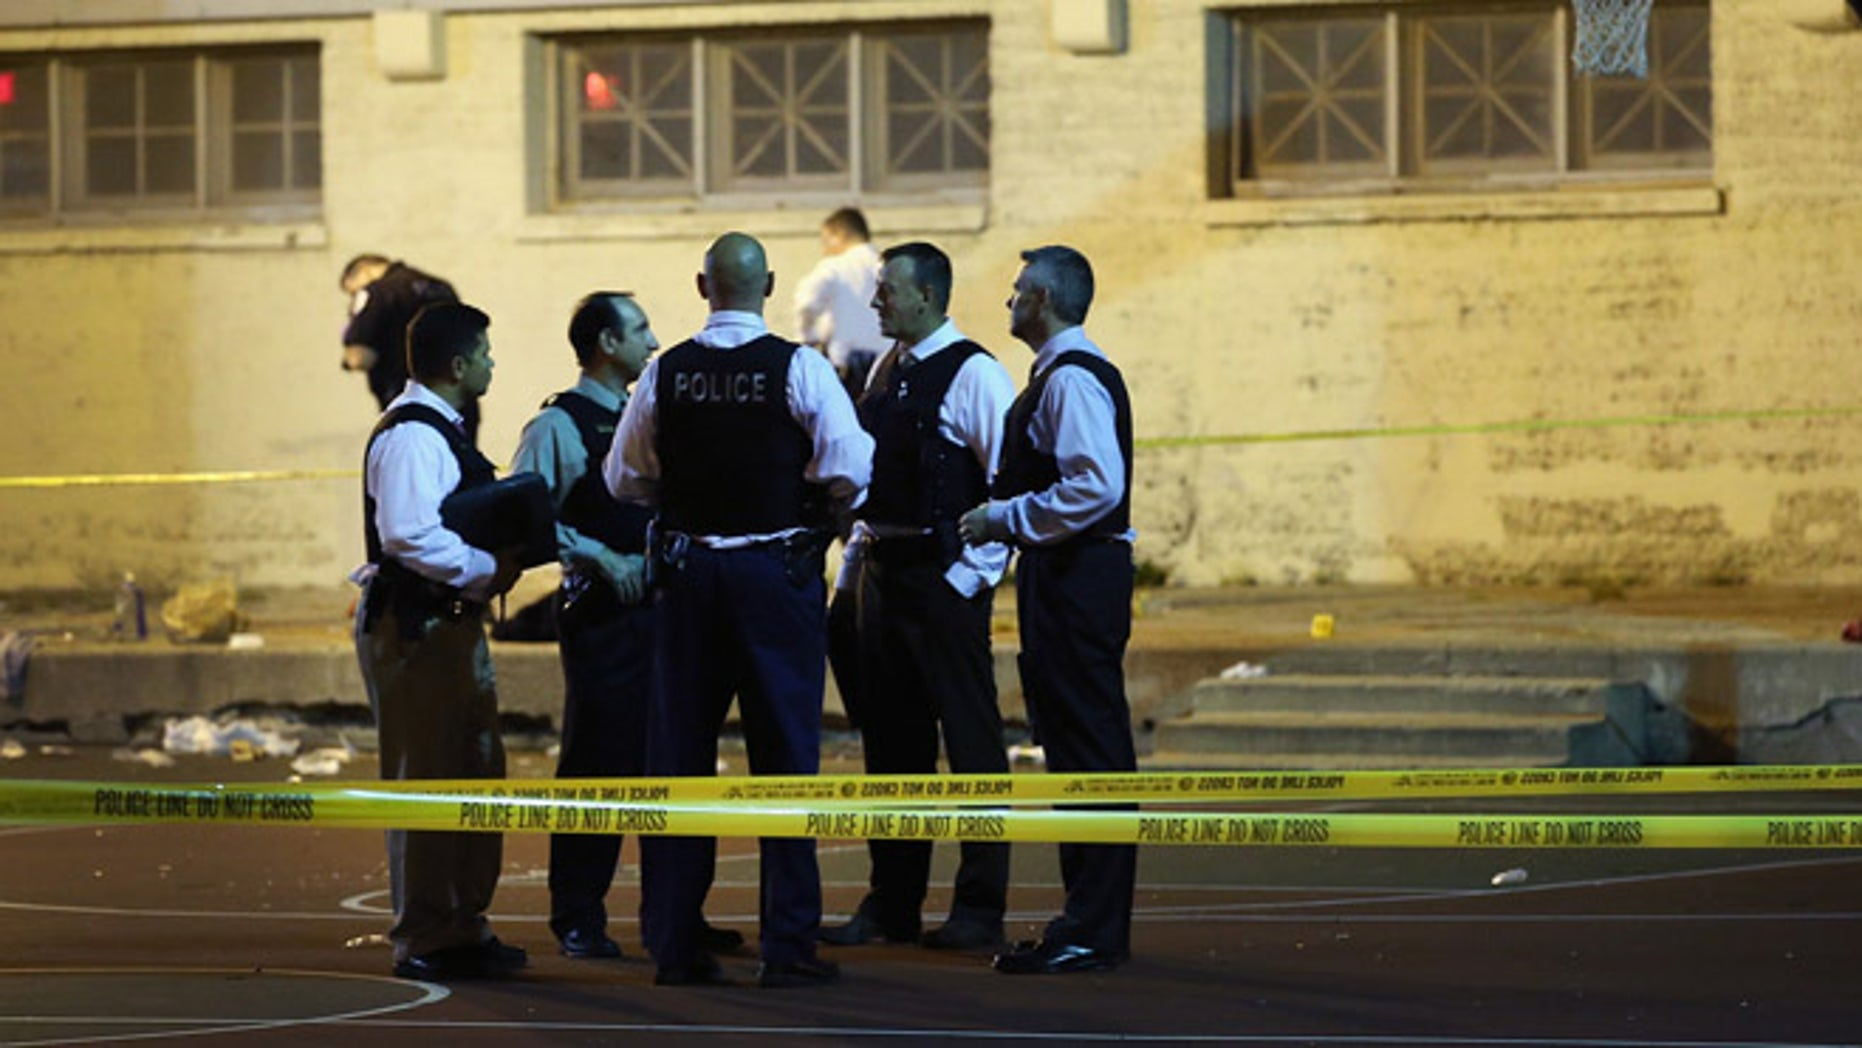 CHICAGO, IL - SEPTEMBER 19:  Police investigate the scene in Cornell Square Park on the Southside where 11 people including a three-year-old child were shot on September 19, 2013 in Chicago, Illinois. Eighteen people were reported shot in the city, including one fatally, in less than a four-hour period on Thursday evening.  (Photo by Scott Olson/Getty Images)